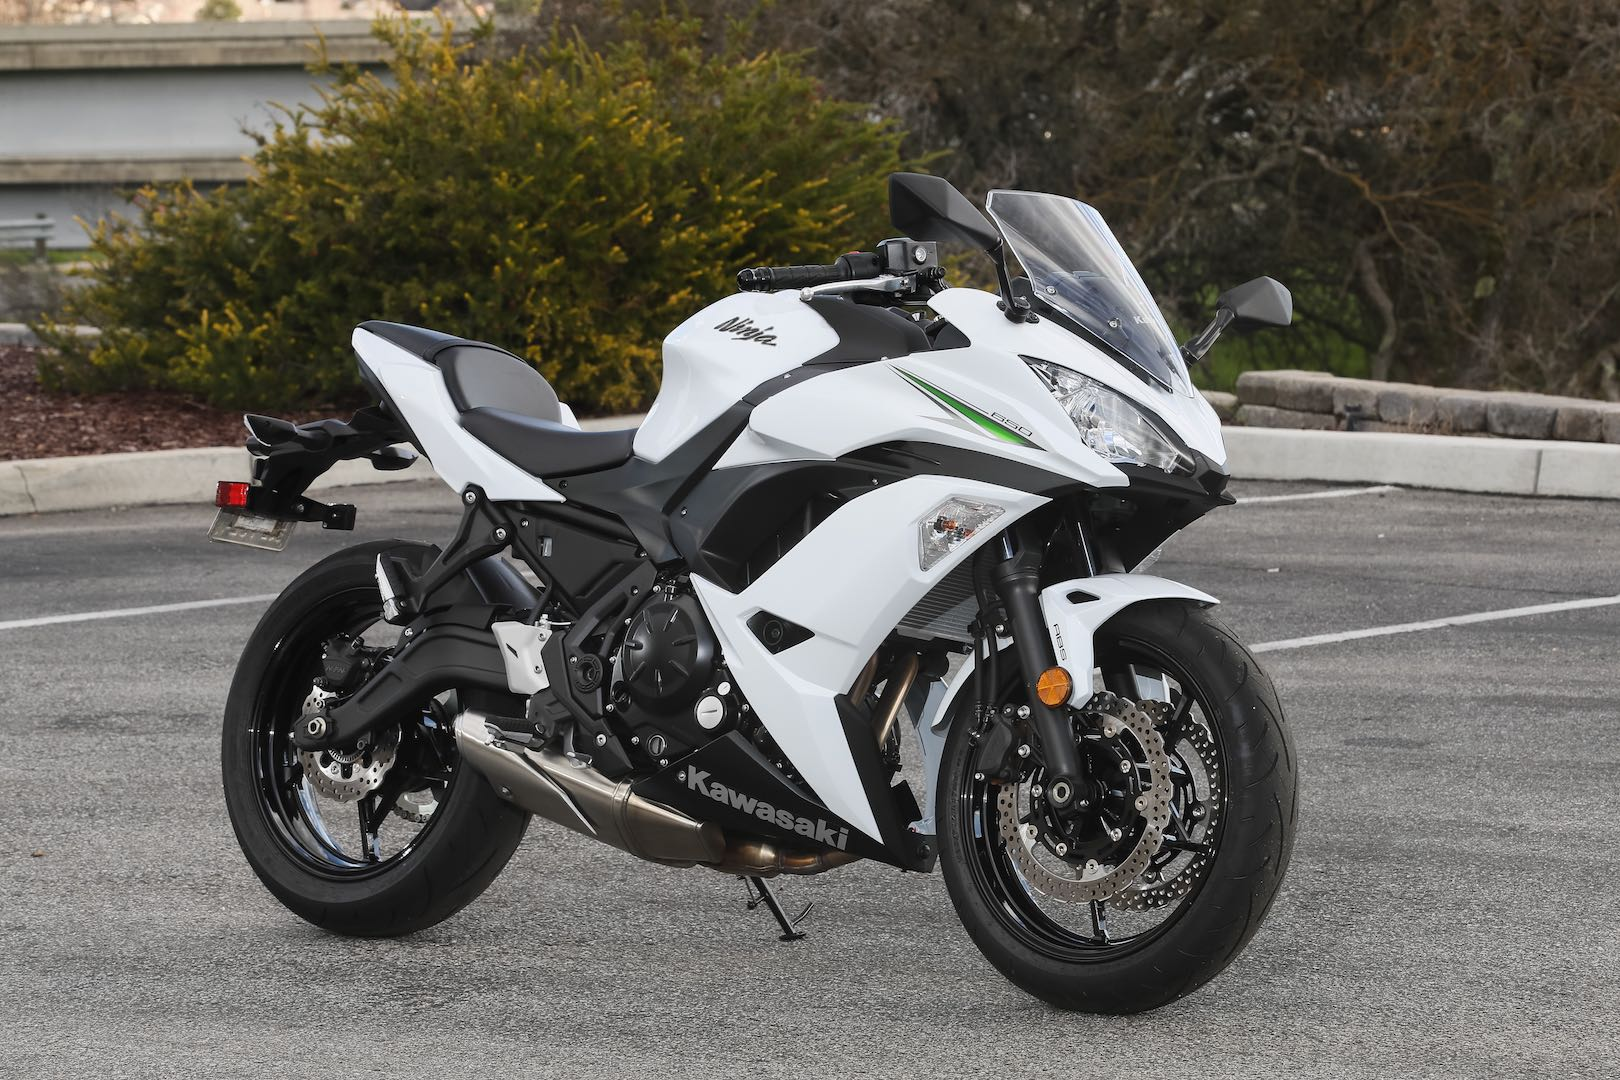 2017 Kawasaki Ninja 650 First Ride Test | 12 Fast Facts